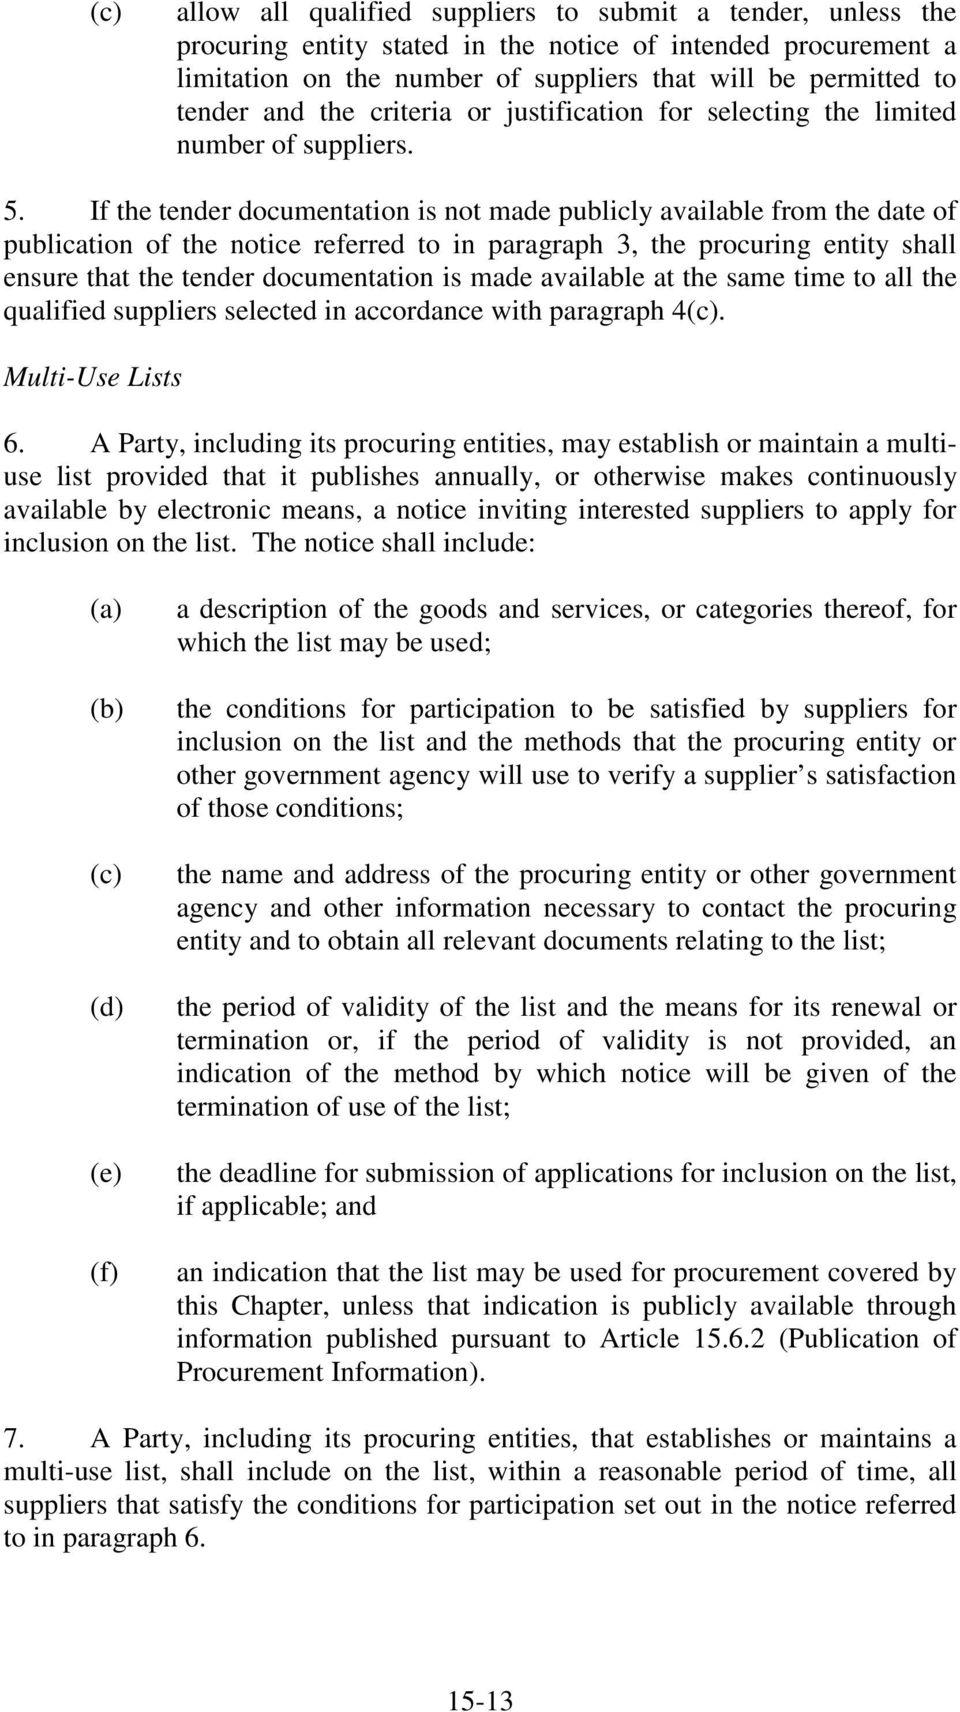 If the tender documentation is not made publicly available from the date of publication of the notice referred to in paragraph 3, the procuring entity shall ensure that the tender documentation is